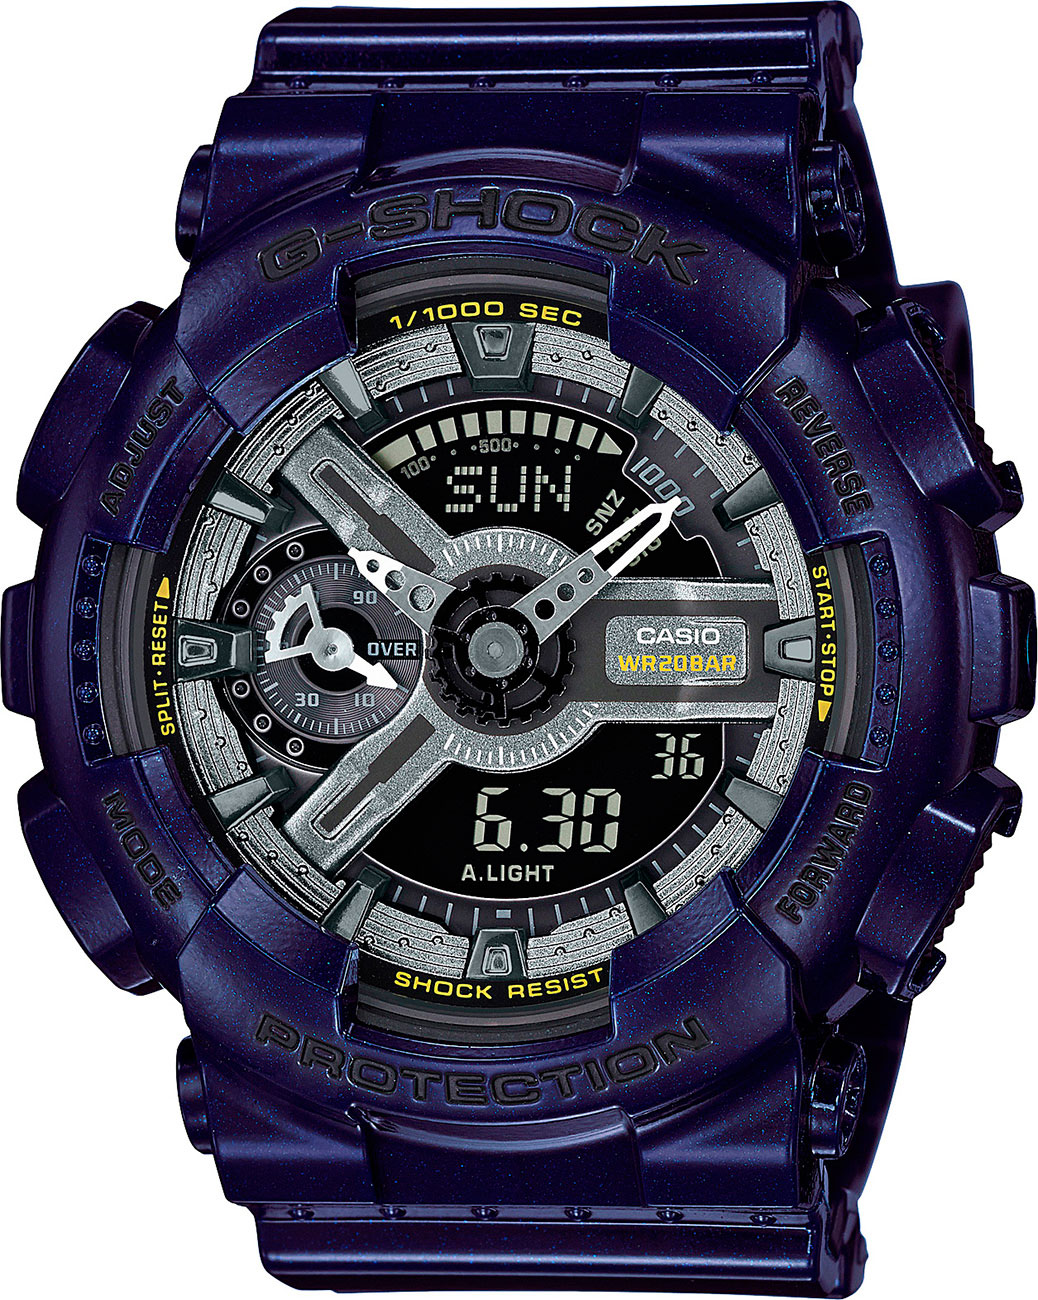 Casio G-shock S Series GMA-S110MC-2A часы женские casio g shock gma s110mp 4a3 pink